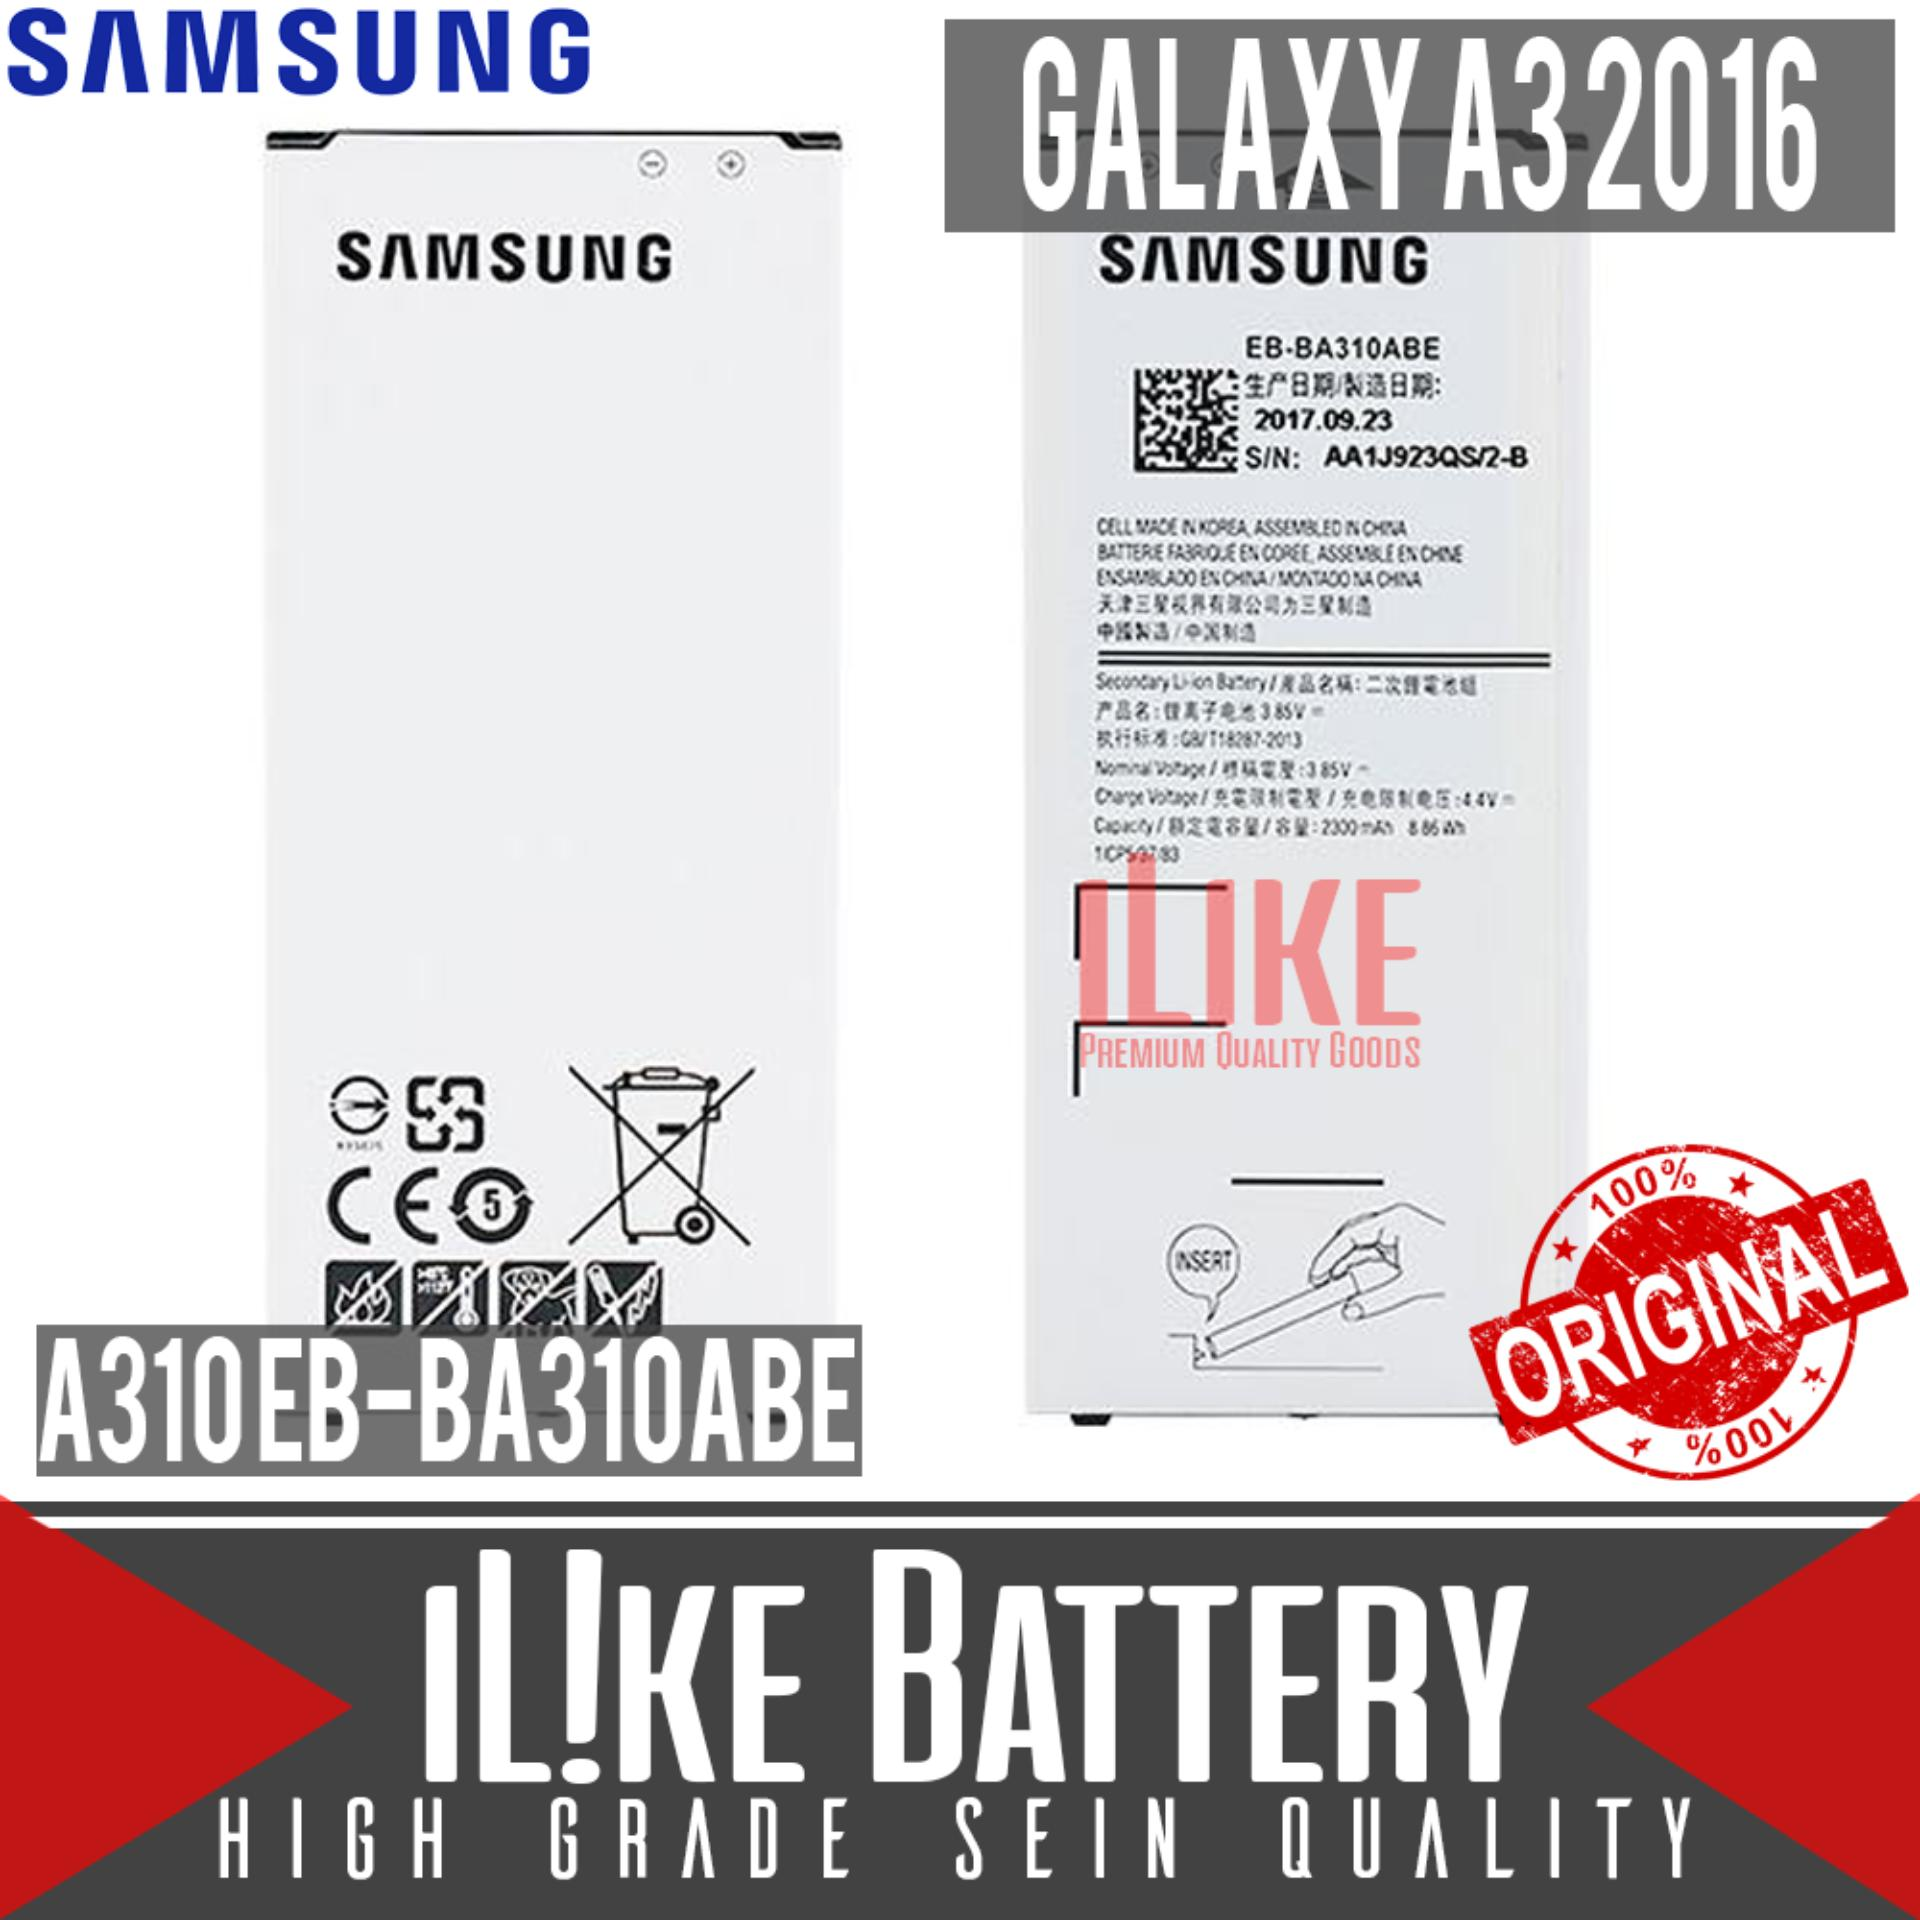 Buy Sell Cheapest Battery Premium Quality Best Product Hippo Baterai Iphone 6 1810 Mah Original Cell Ilike Samsung Galaxy A3 2016 A310 High Grade Sein